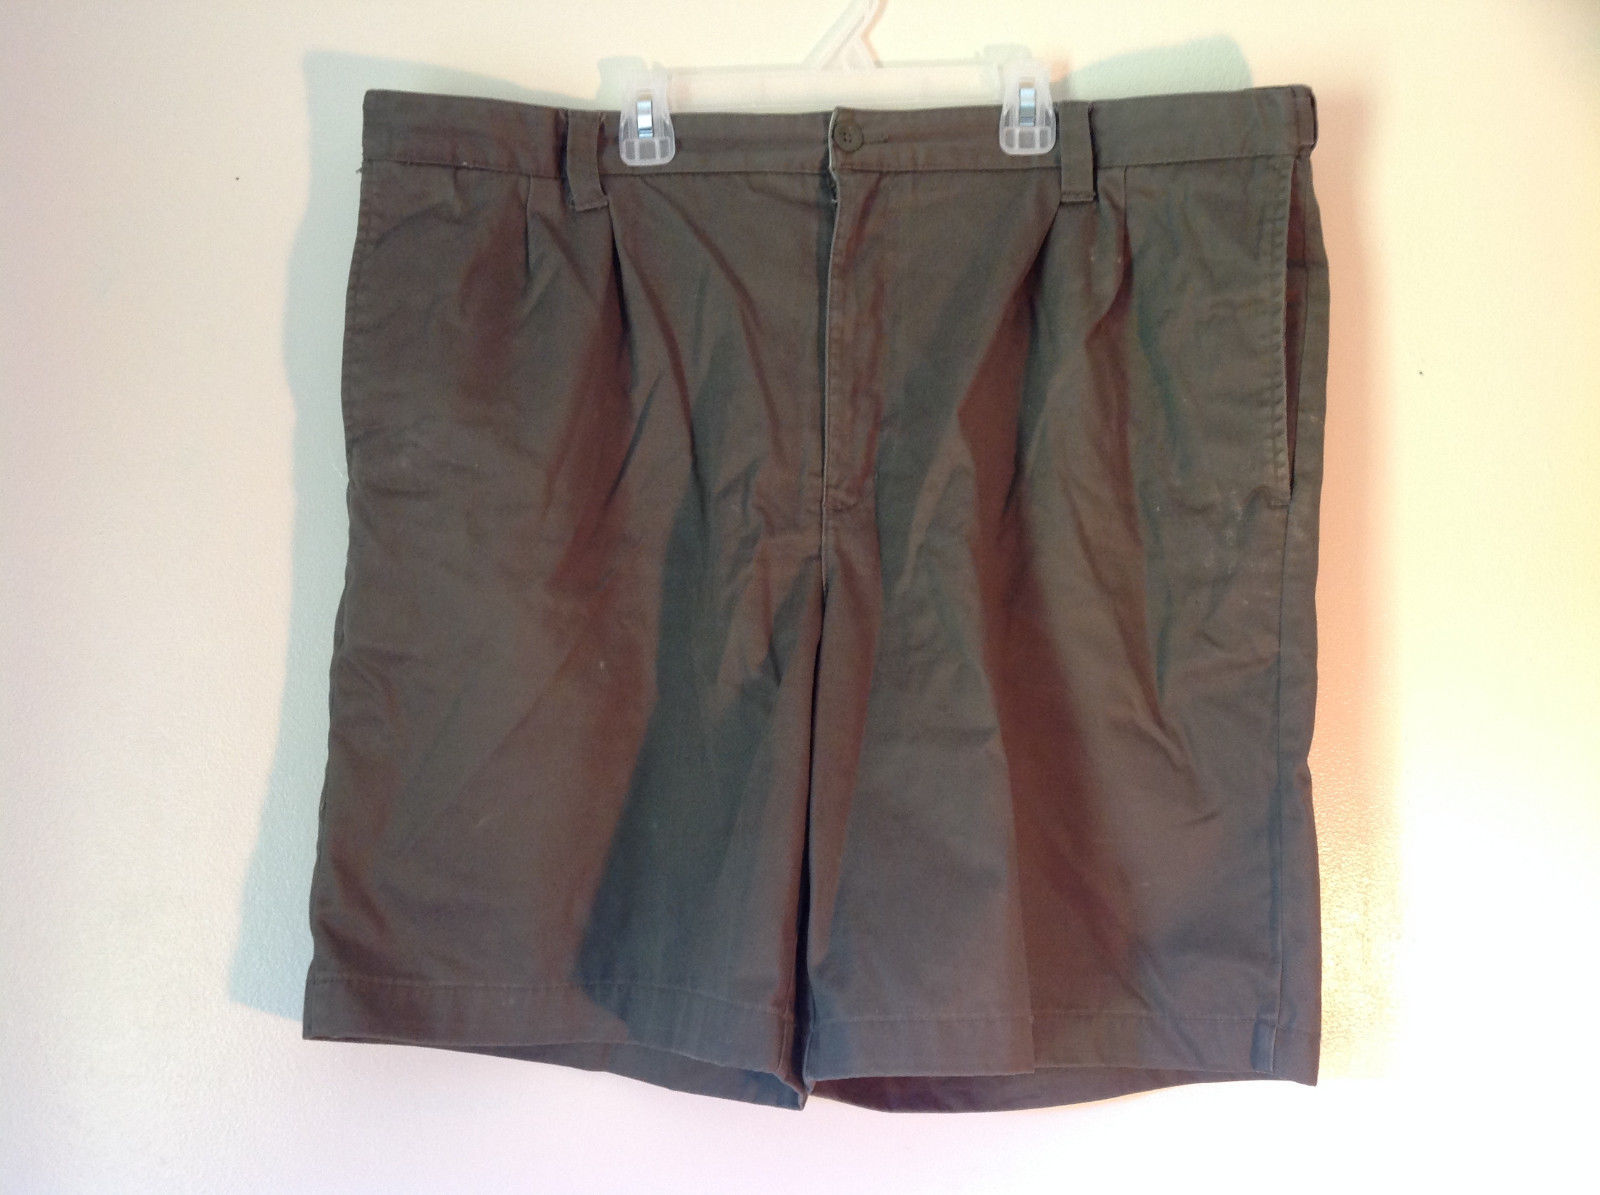 Olive Green Size 42 Cherokee Pleated Shorts Front and Back Pockets Belt Loops